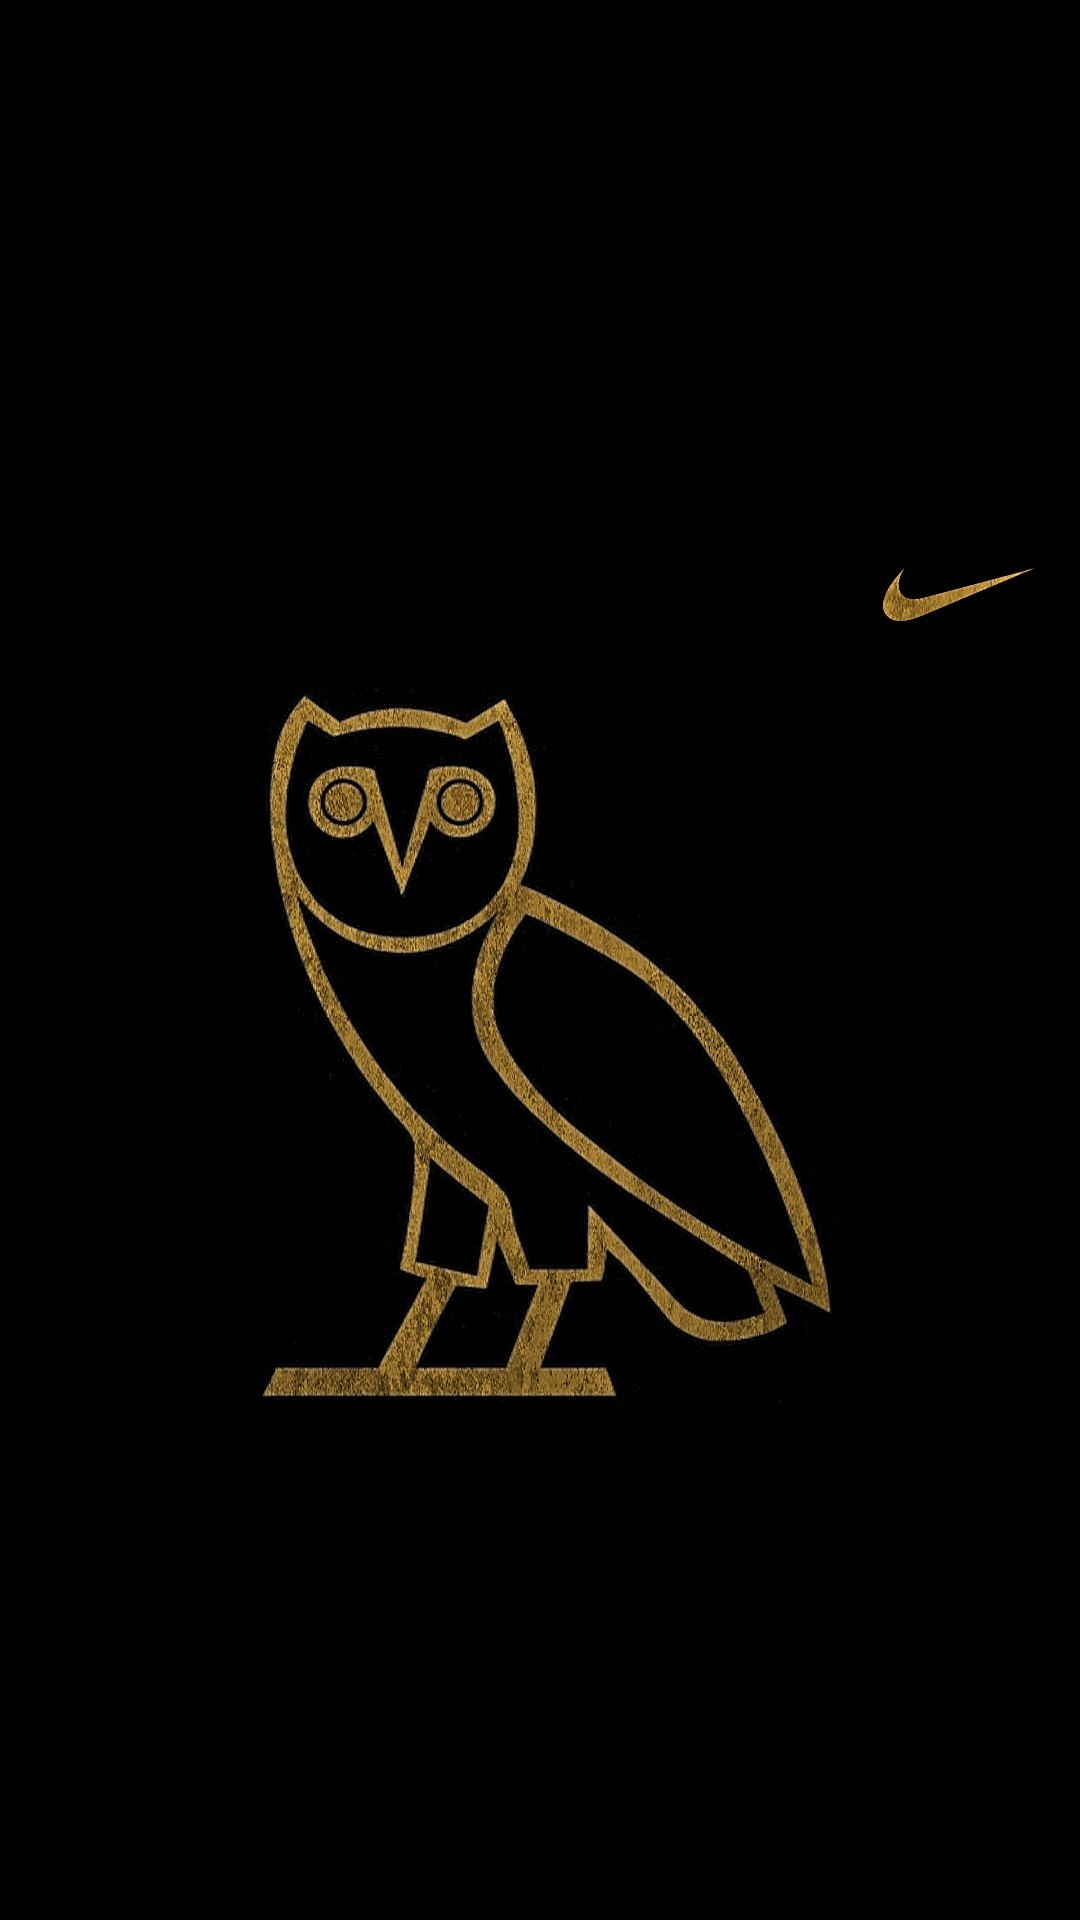 Nike wallpapers 2018 66 images 2560x1440 hd nike backgrounds for desktop voltagebd Choice Image